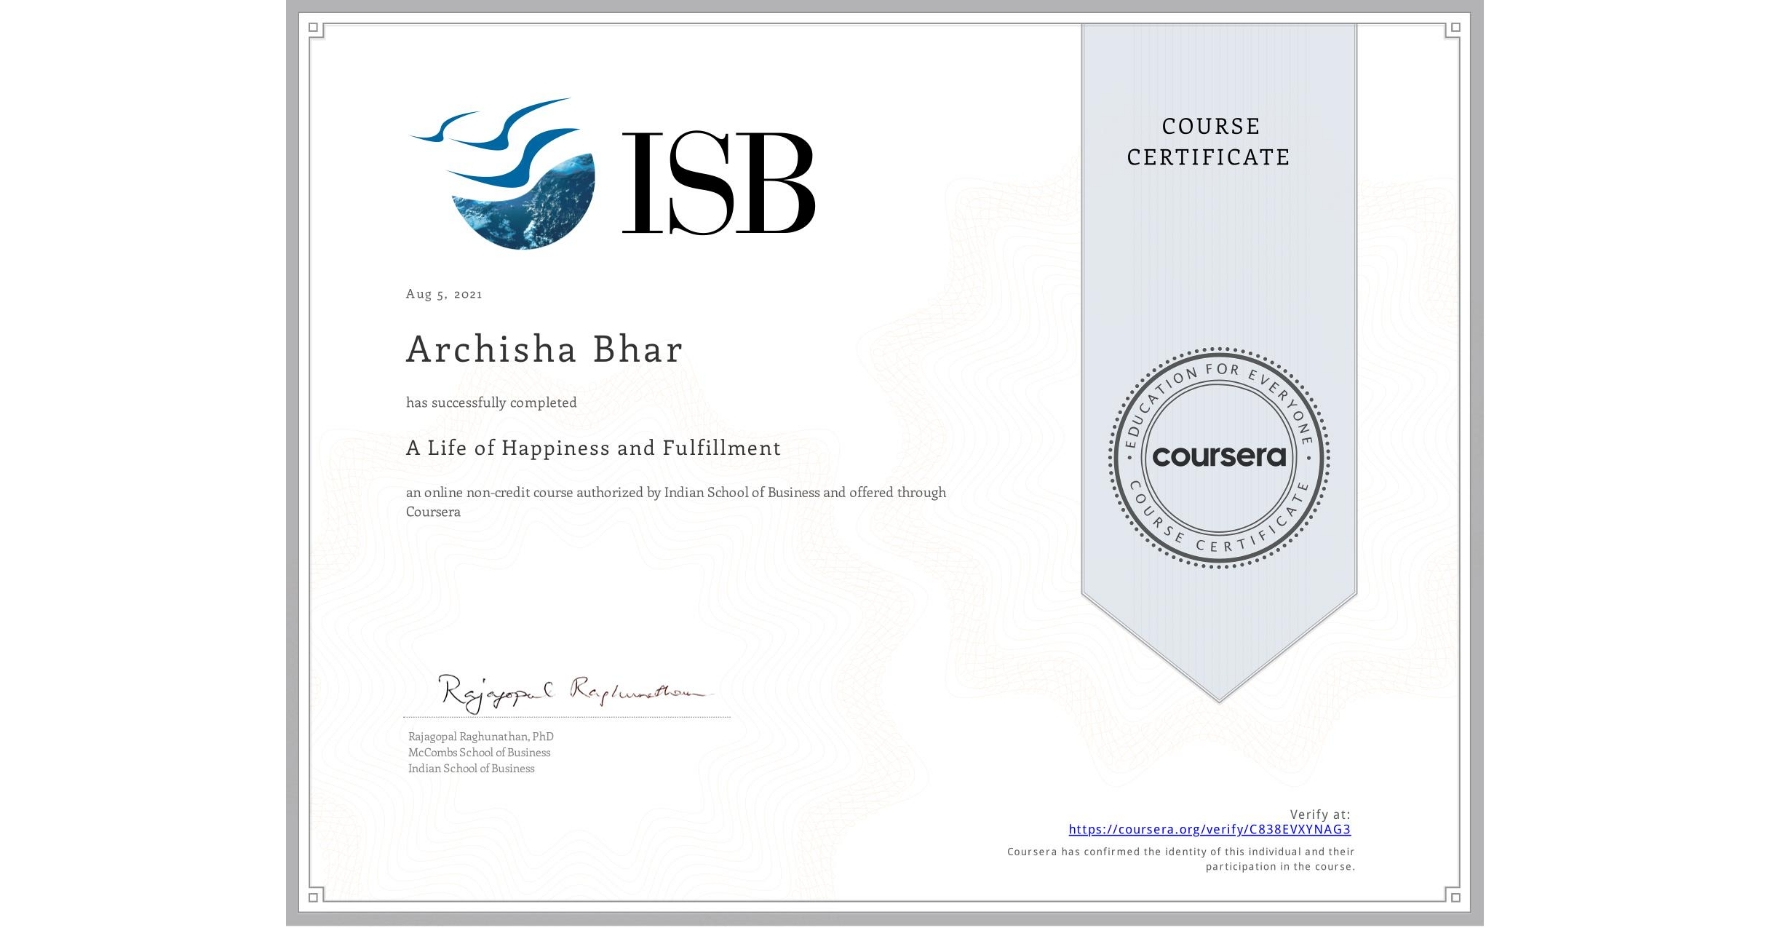 View certificate for Archisha Bhar, A Life of Happiness and Fulfillment, an online non-credit course authorized by Indian School of Business and offered through Coursera